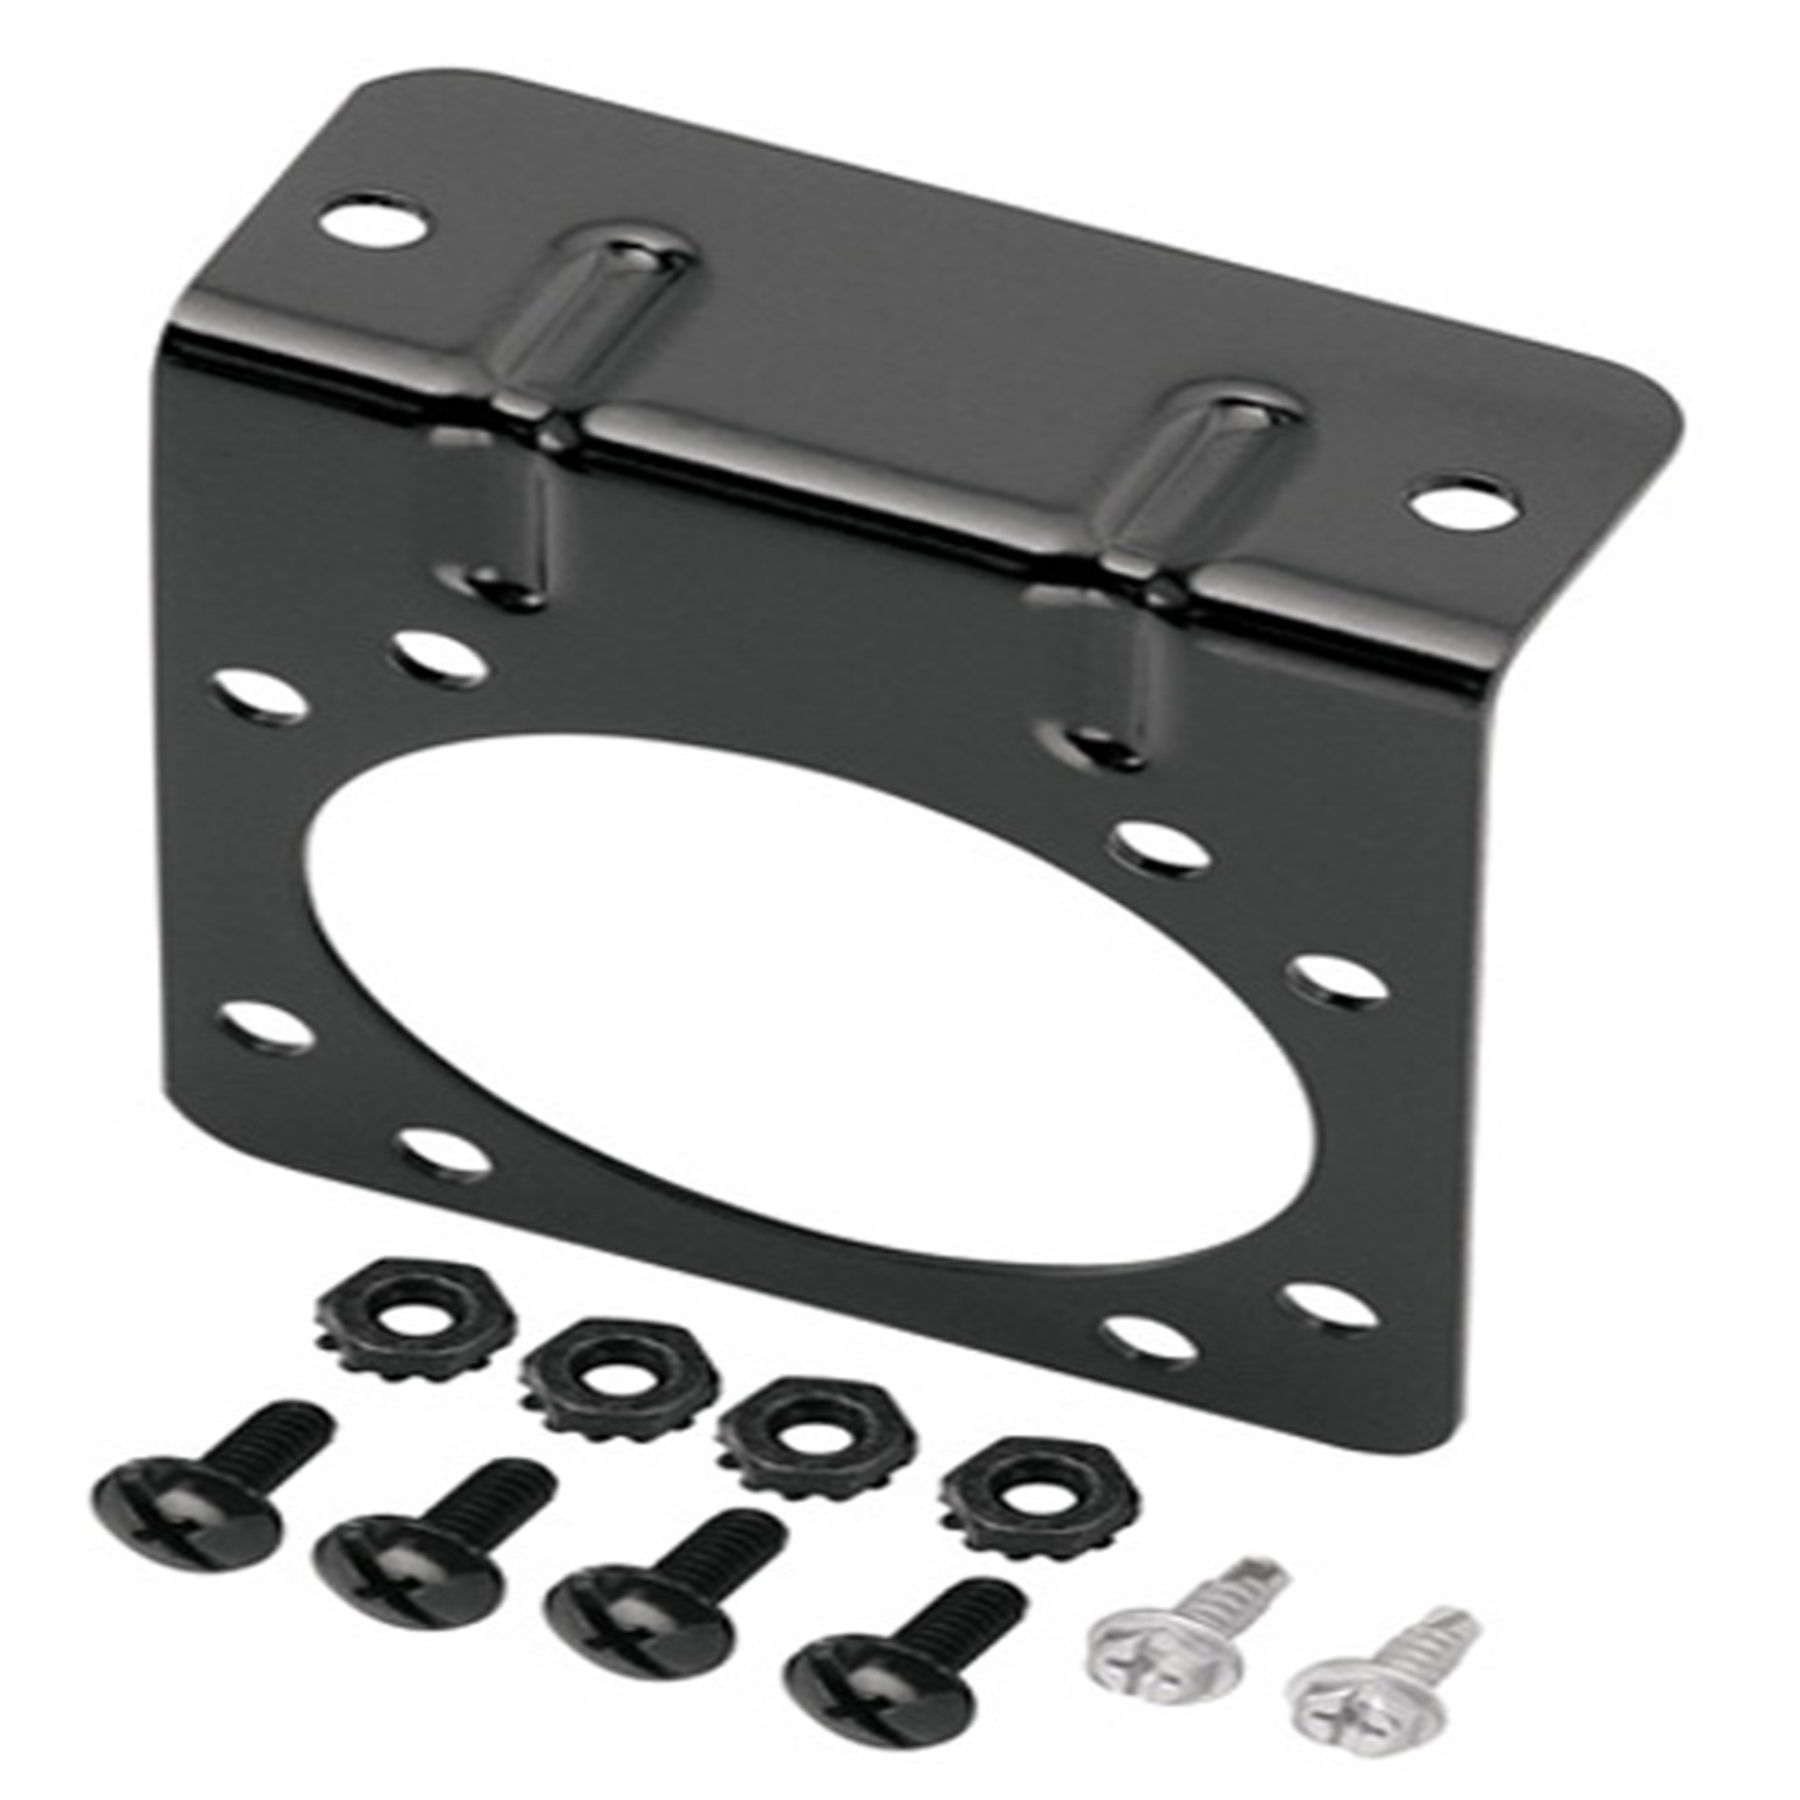 7 Way Mount Bracket Replacement Auto Part, Easy to Install